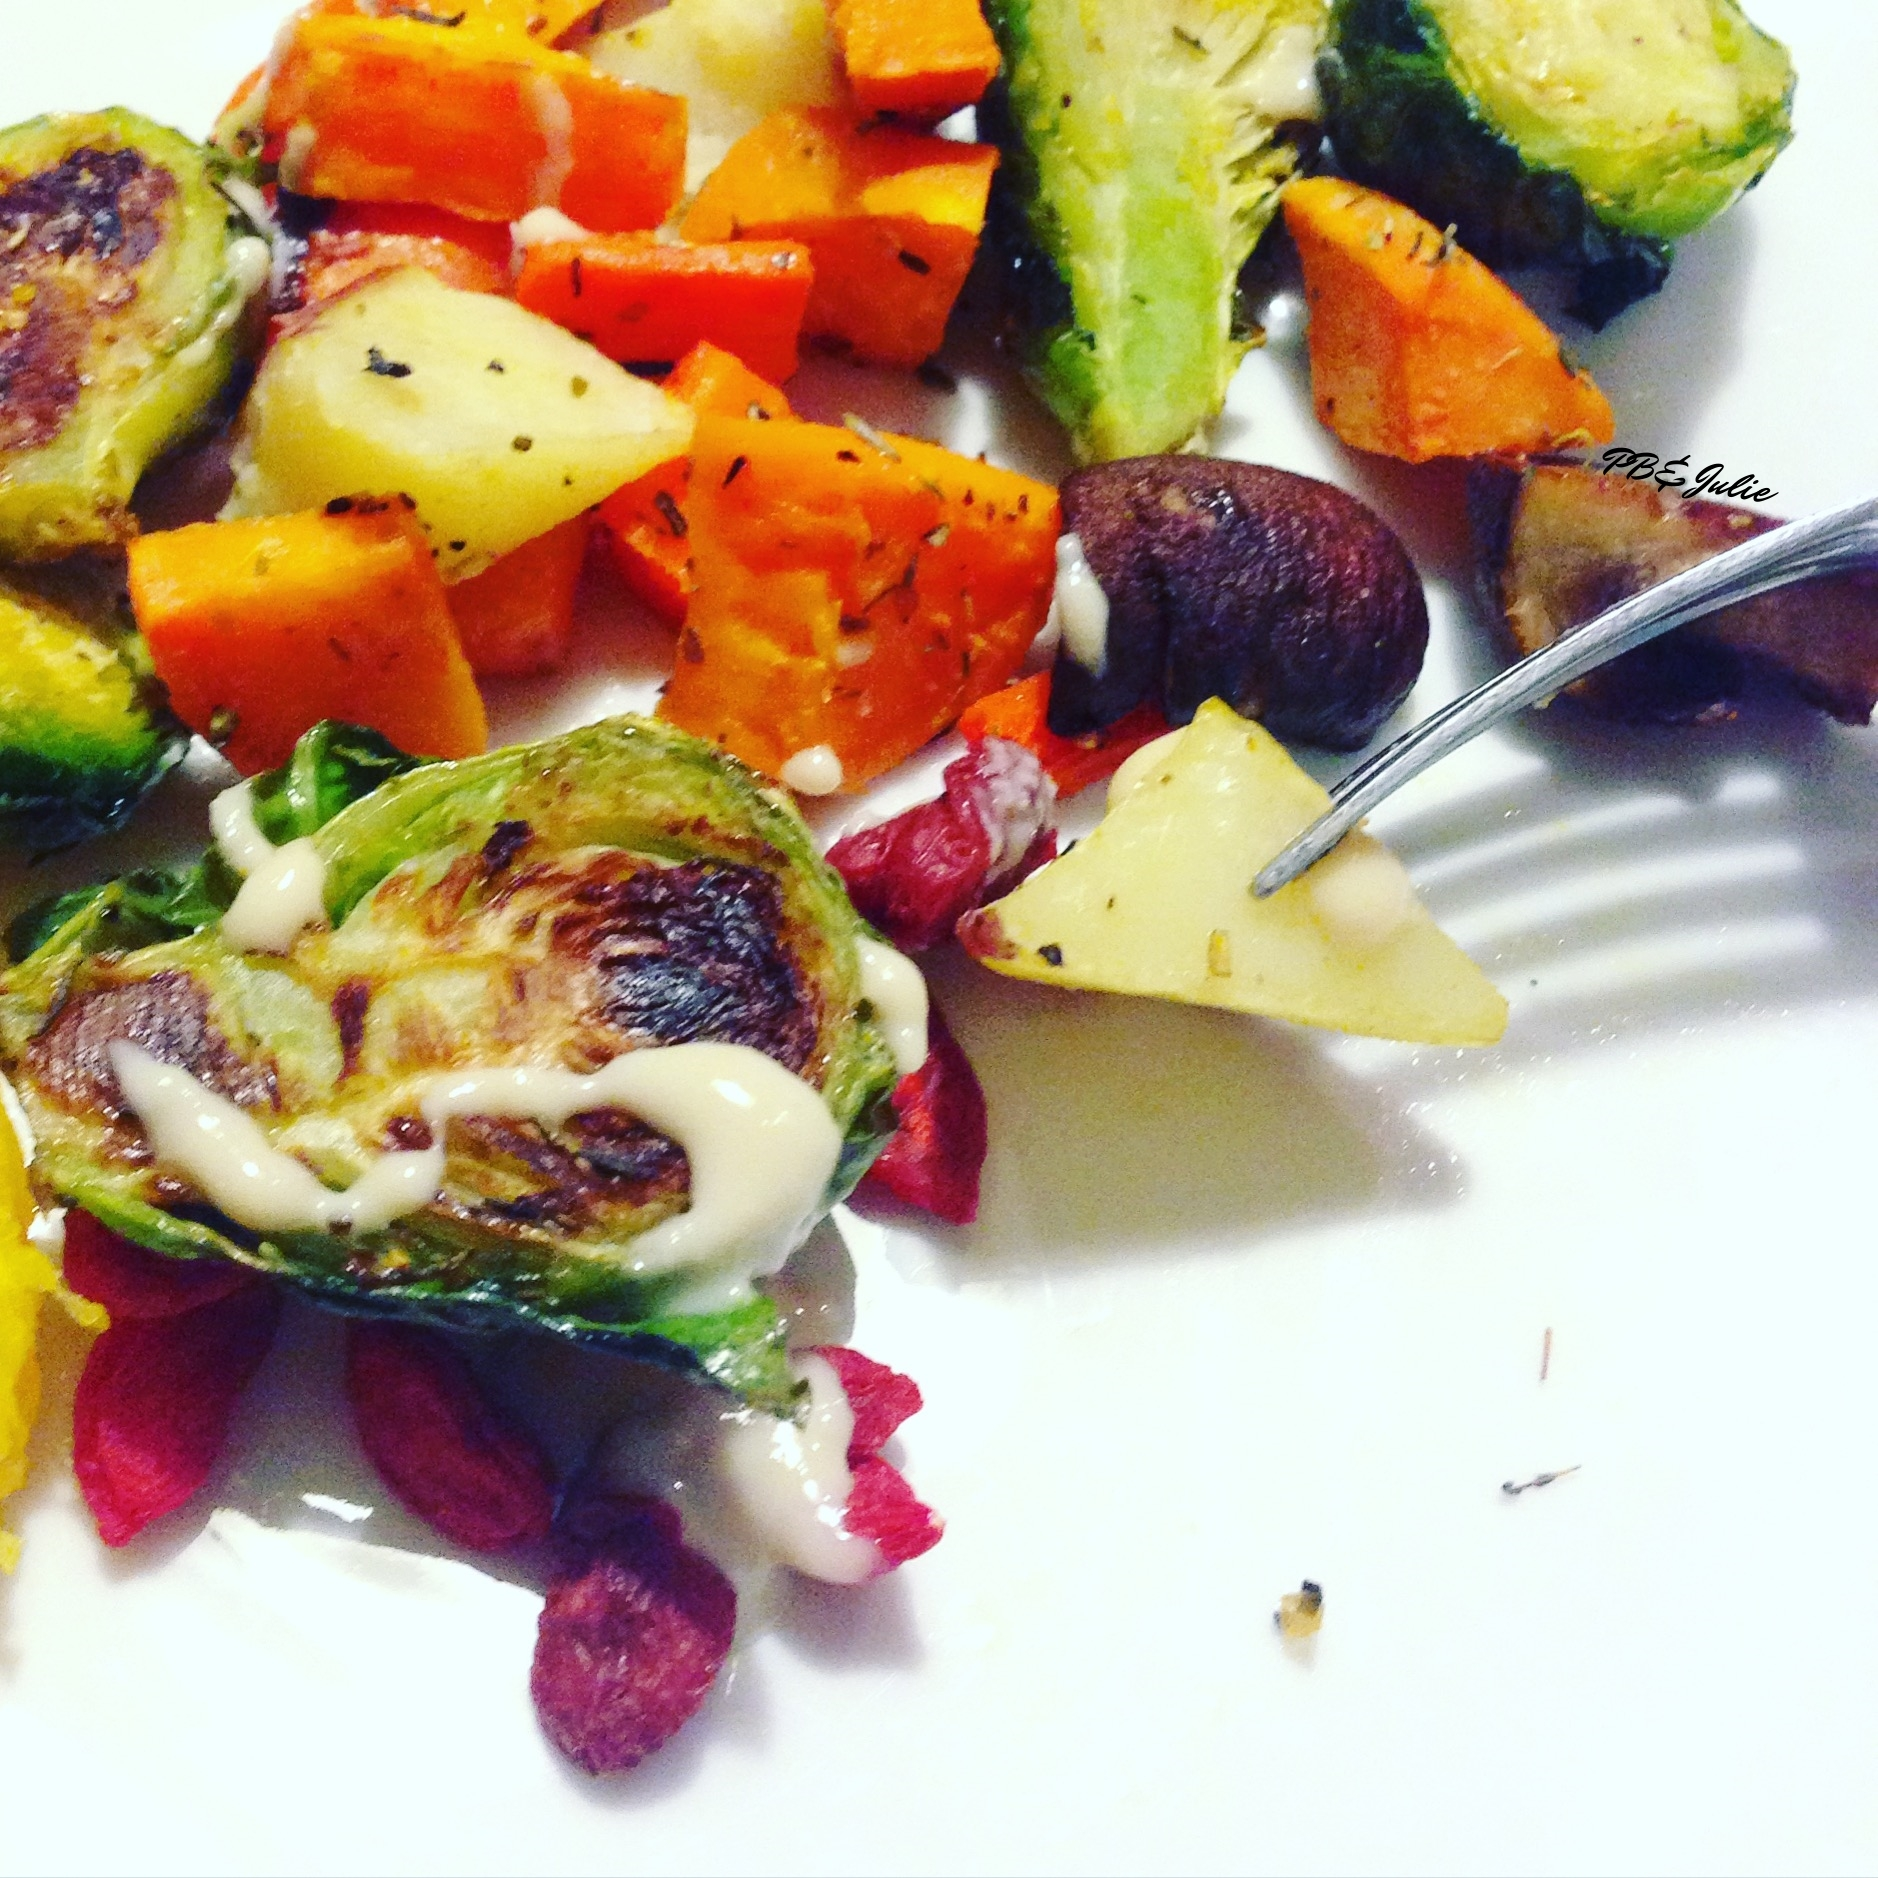 I spiced up my Easy Roasted Fall Veggies with goji berries and a raw tahini drizzle. Delicious! #vegan #thanksgiving #plantbased